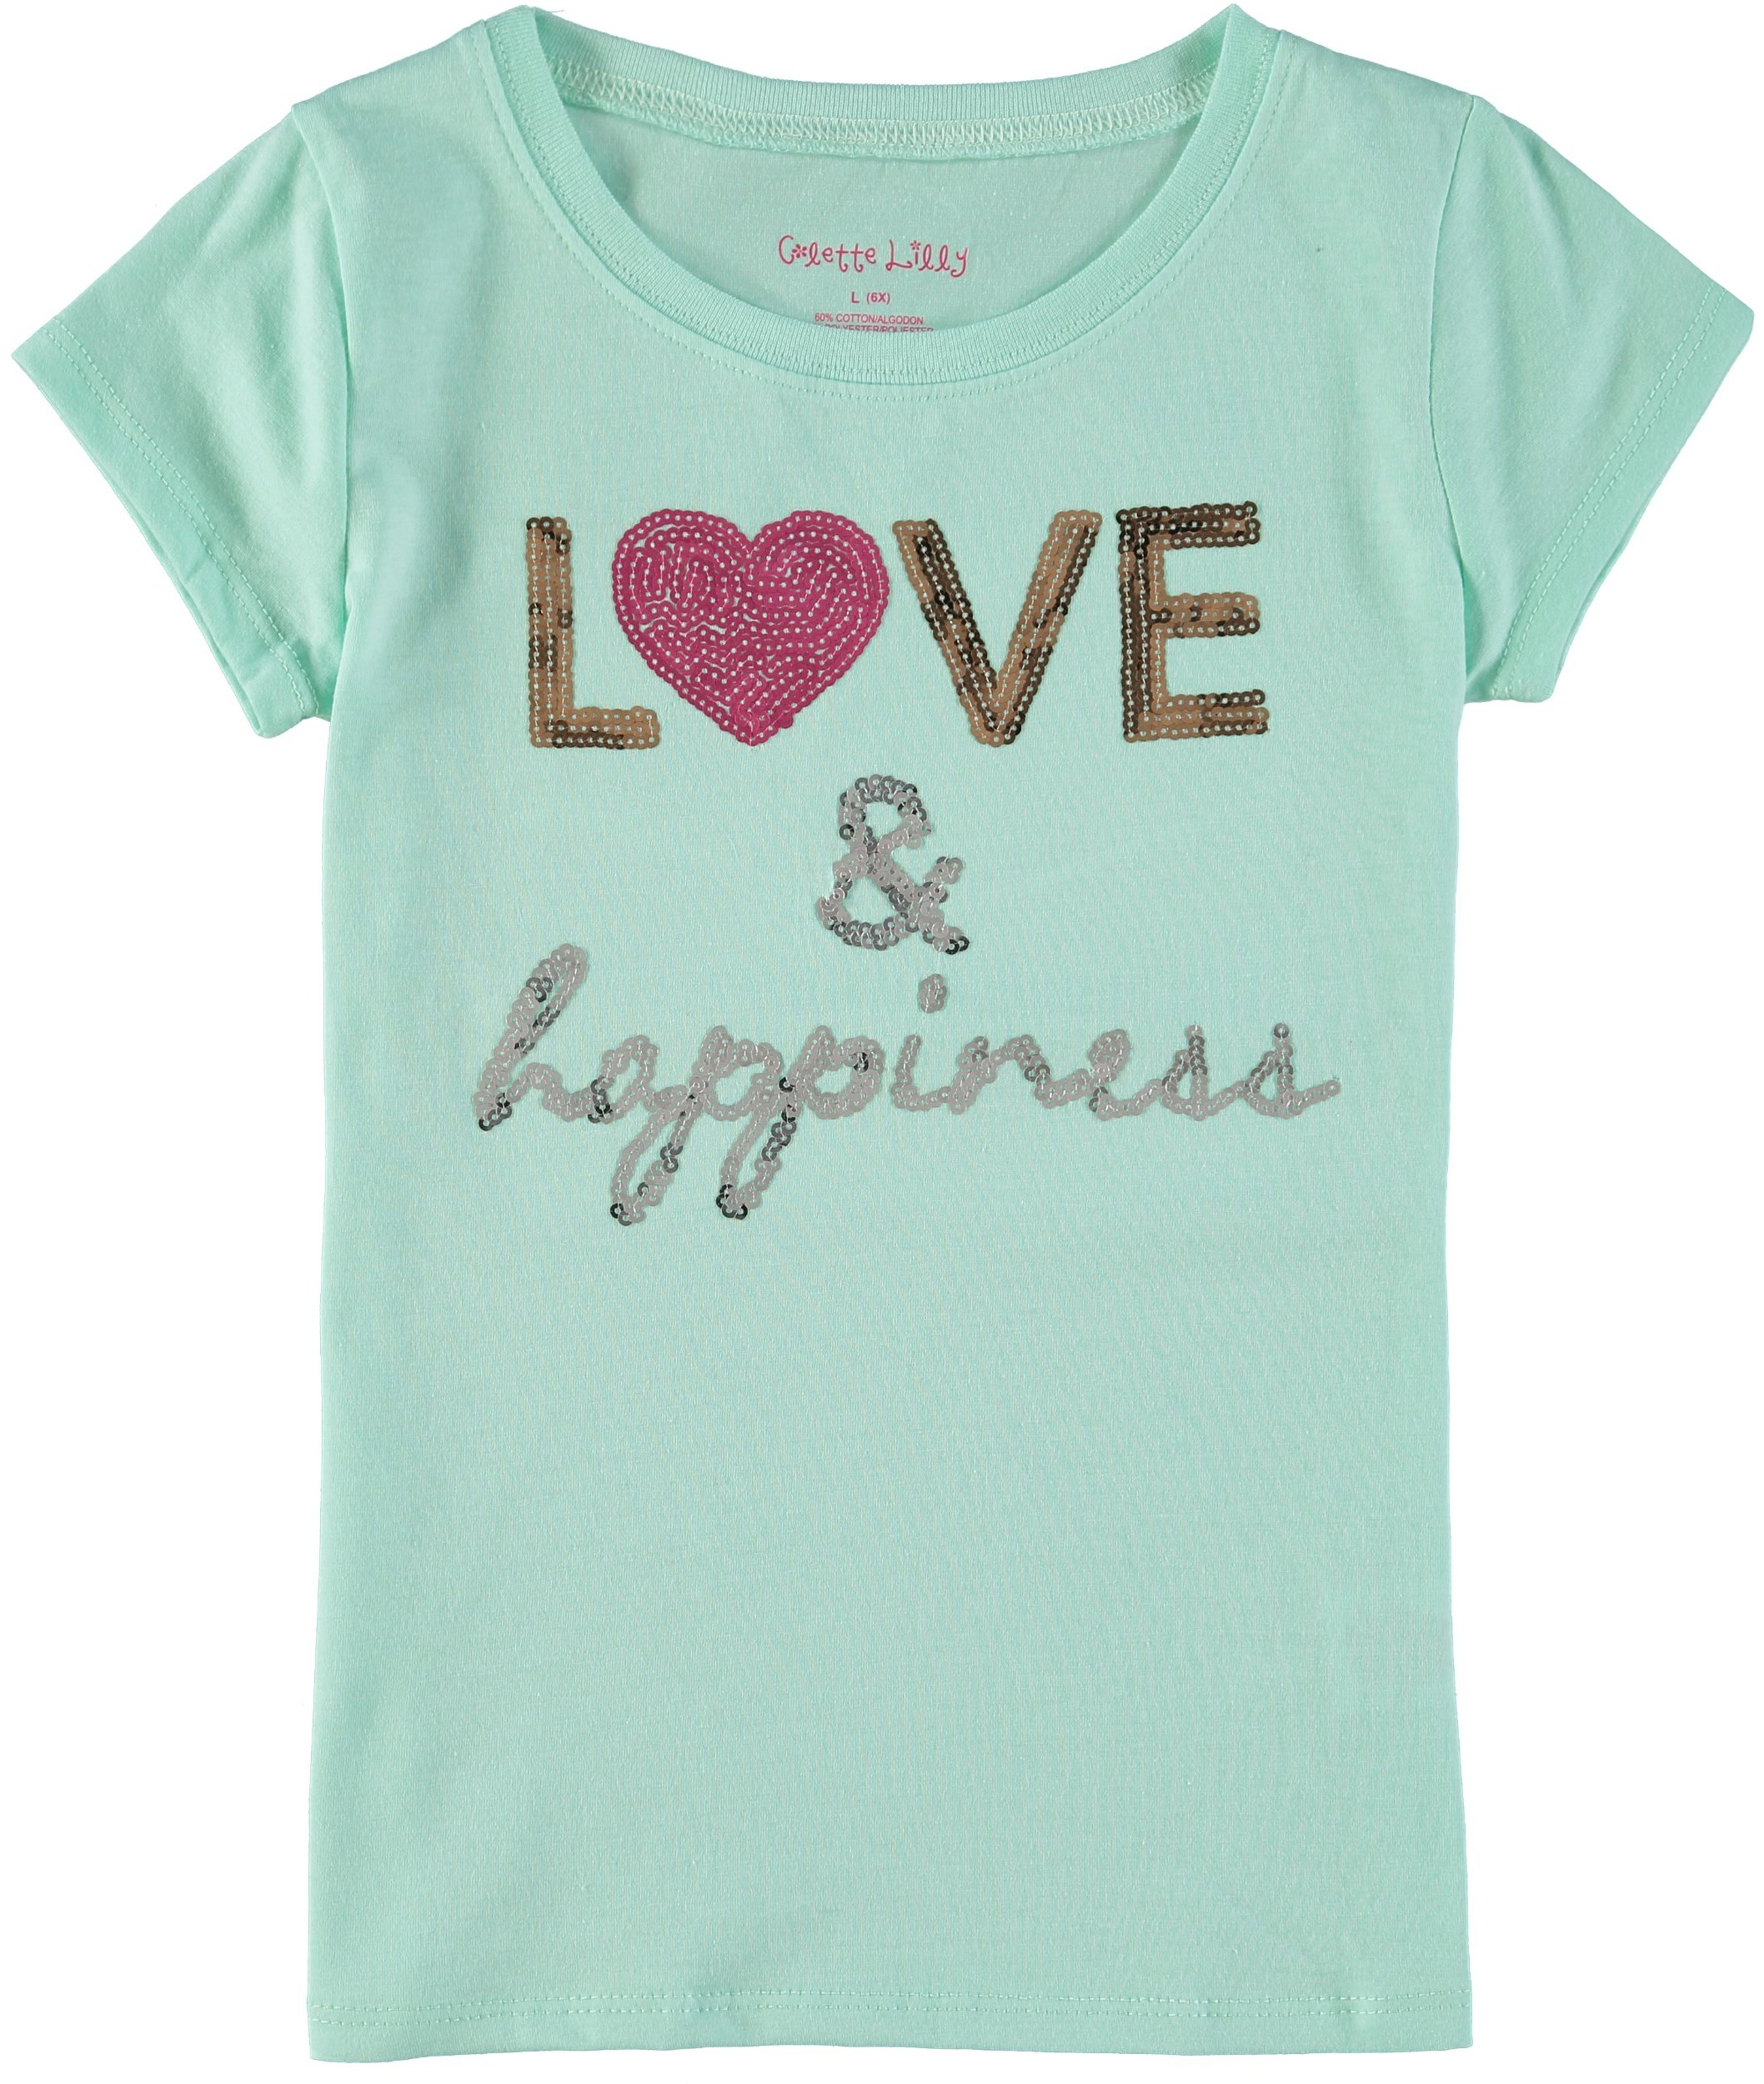 Colette Lilly Little Girls' Love Sequin T-Shirt by Colette Lilly